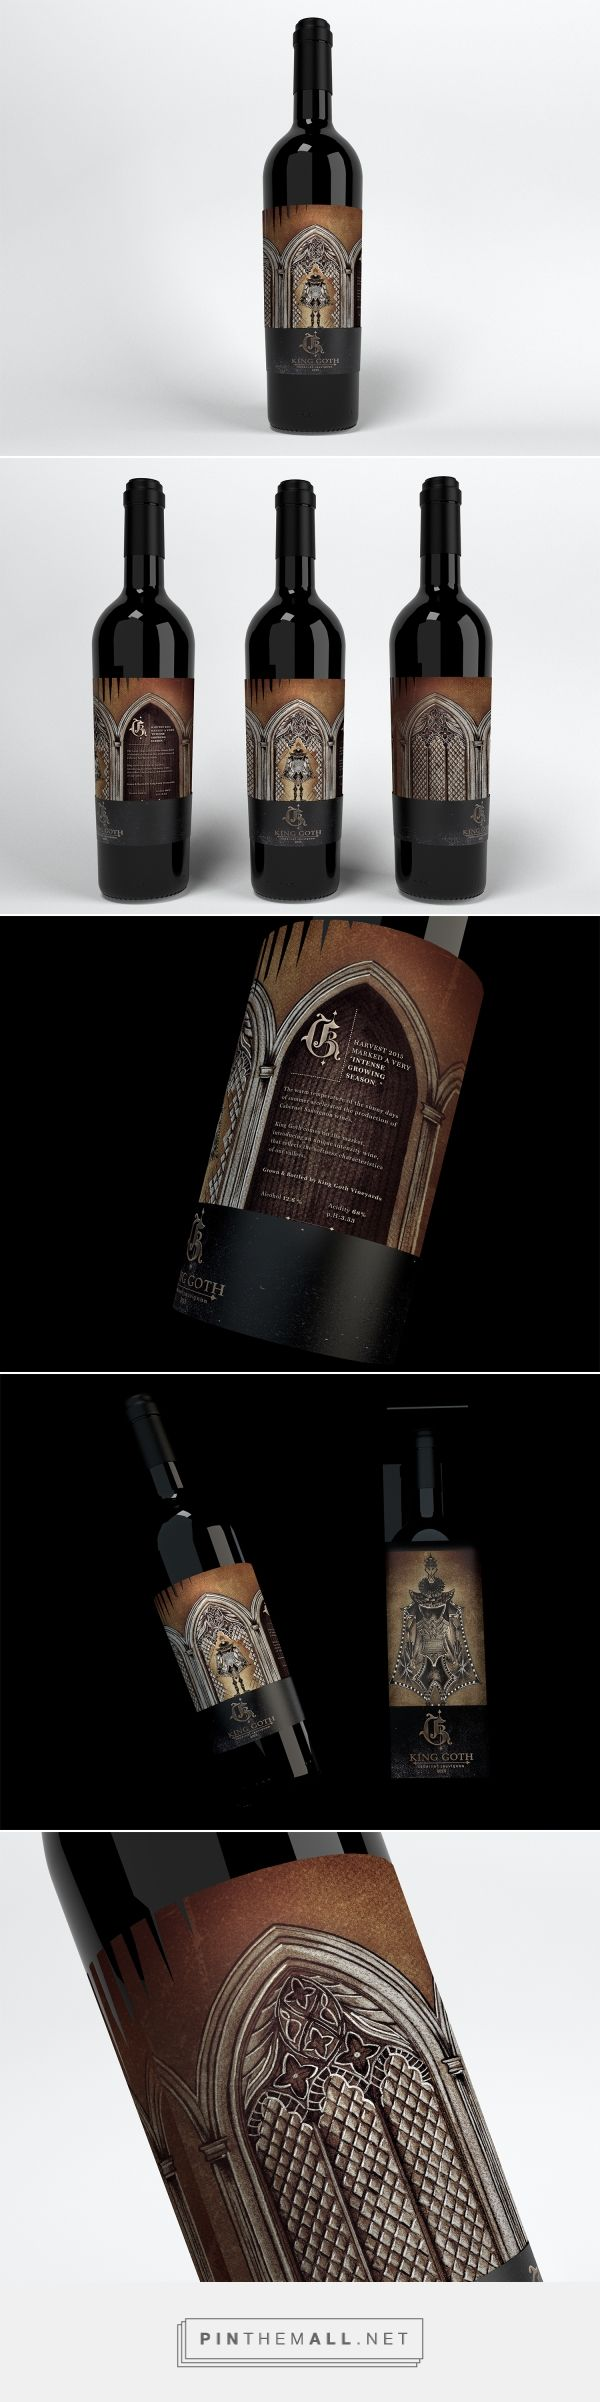 King Goth - Packaging of the World - Creative Package Design Gallery - http://www.packagingoftheworld.com/2017/09/king-goth.html